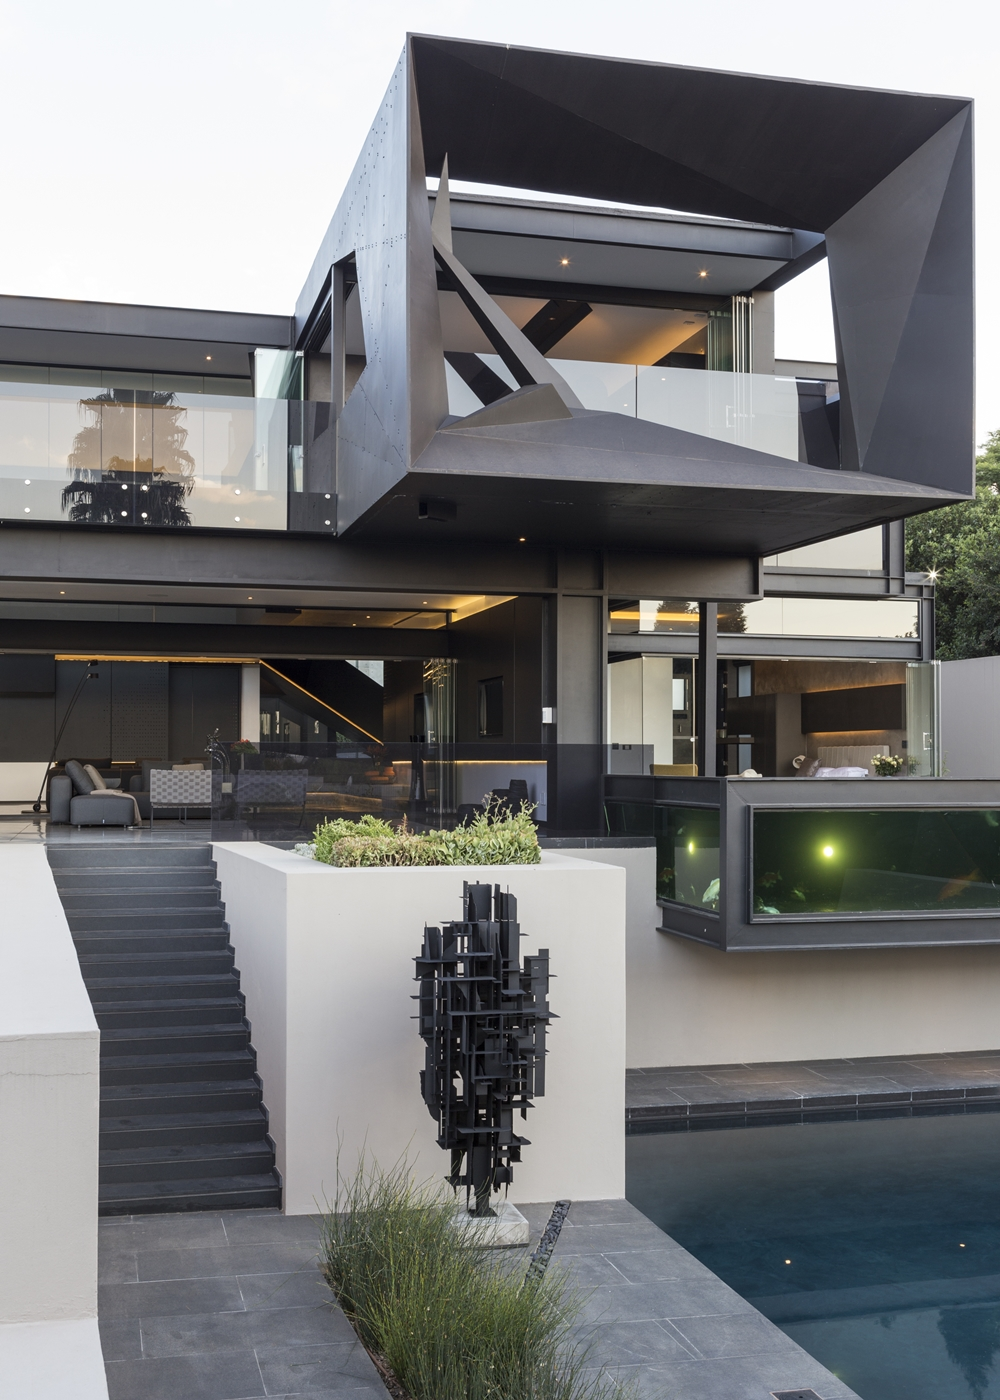 Best houses in the world amazing kloof road house for Best houses in the world for sale